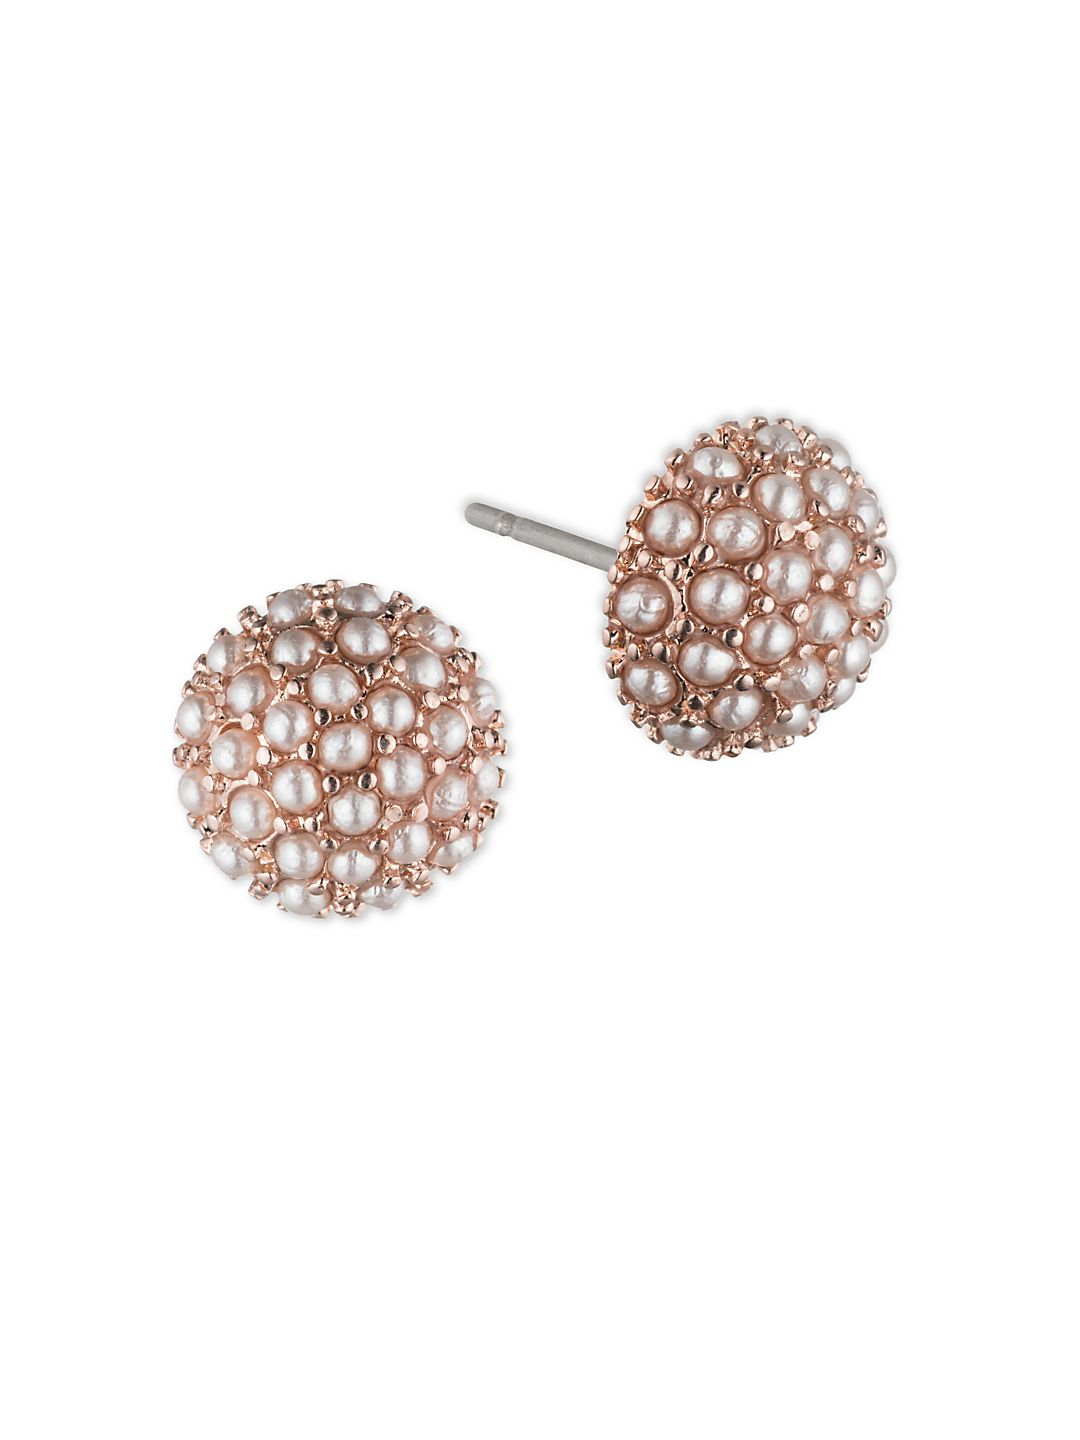 1.5MM Simulated Pearl Rose Goldtone Button Stud Earrings